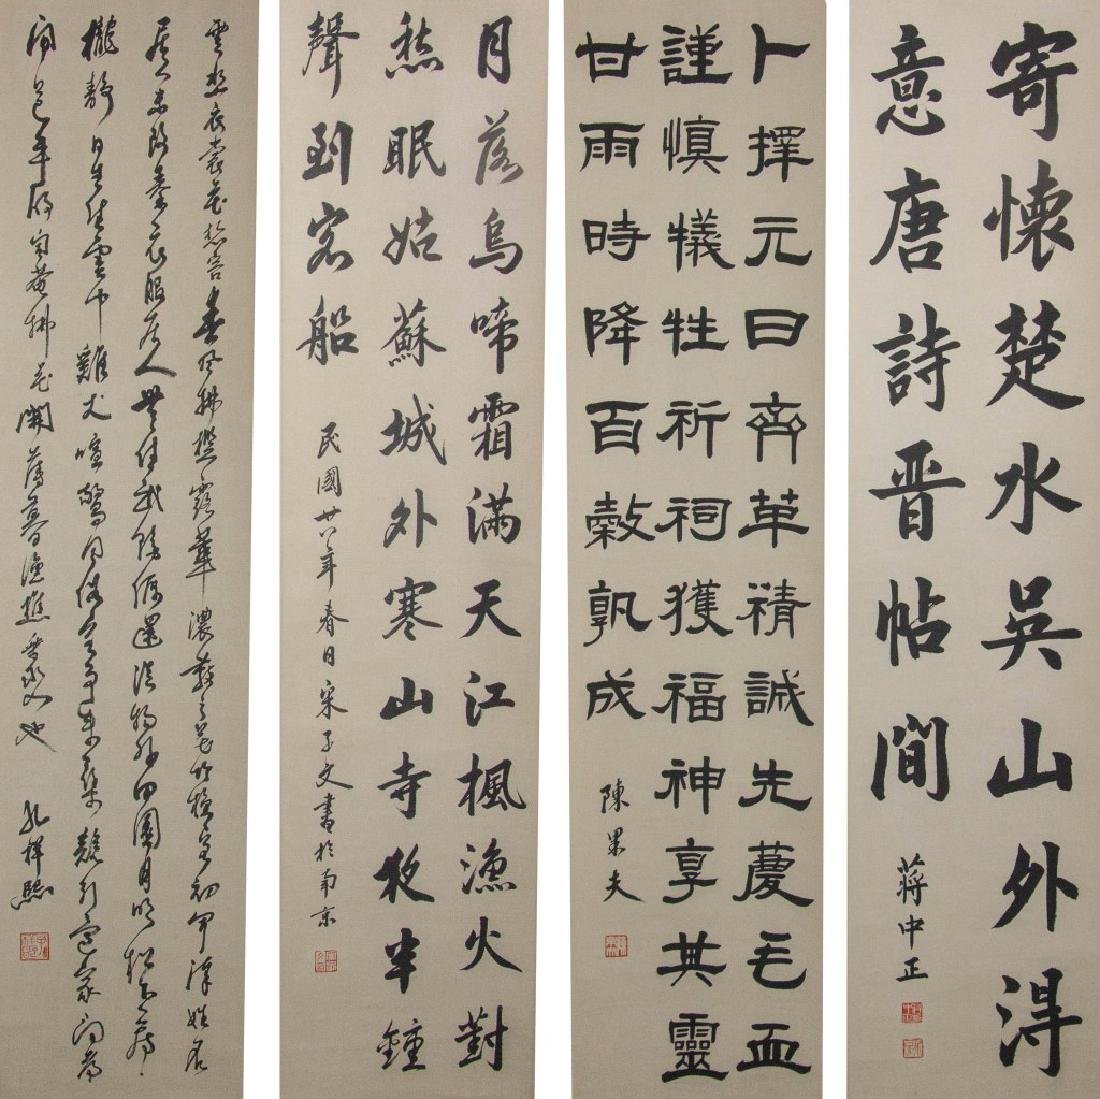 Four Big Families of China Calligraphy PaperScroll